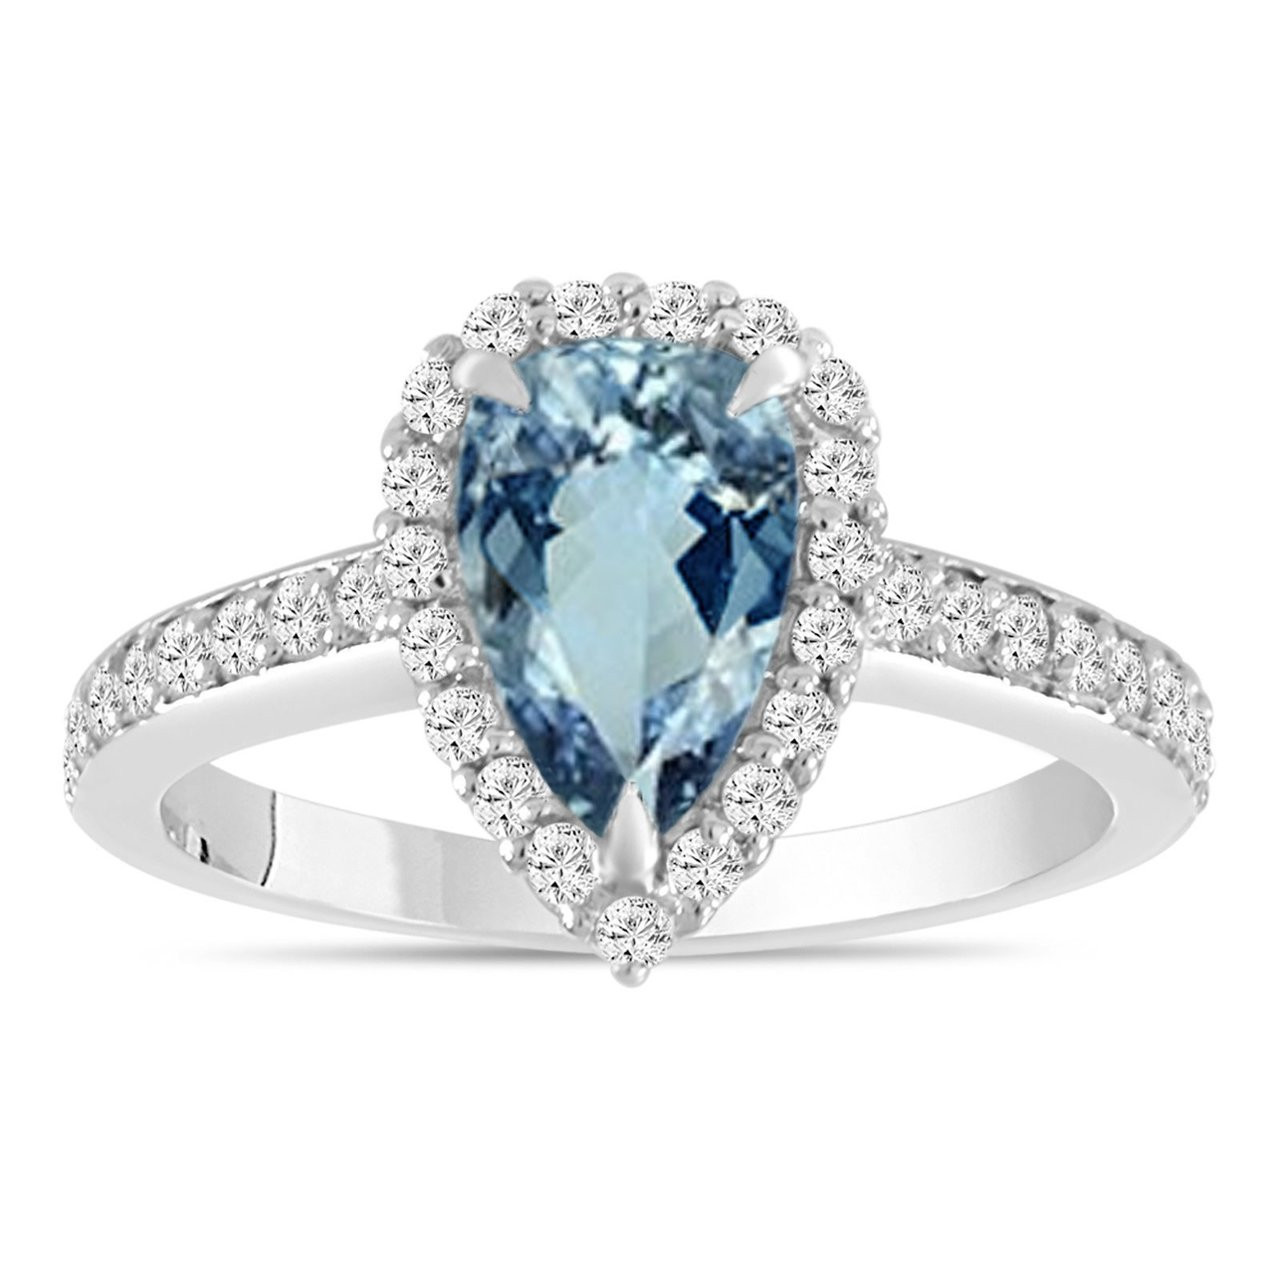 fe537a49cacca Pear Shaped Aquamarine Engagement Ring, Aquamarine and Diamonds Wedding  Ring, 14K White Gold Certified 1.75 Carat Pave Halo Unique Handmade